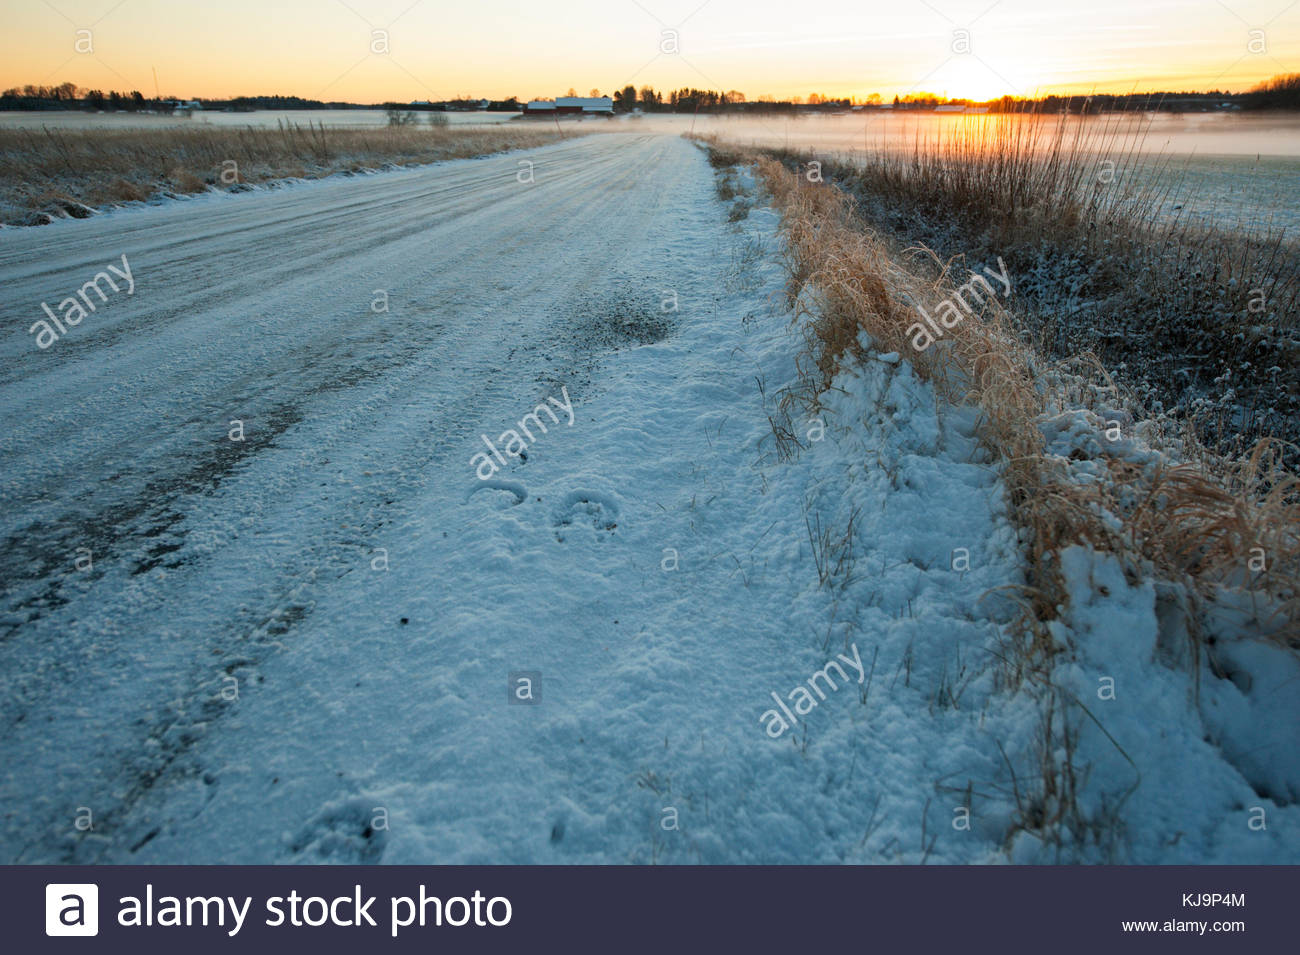 Footsteps in the snow by a horse. - Stock Image